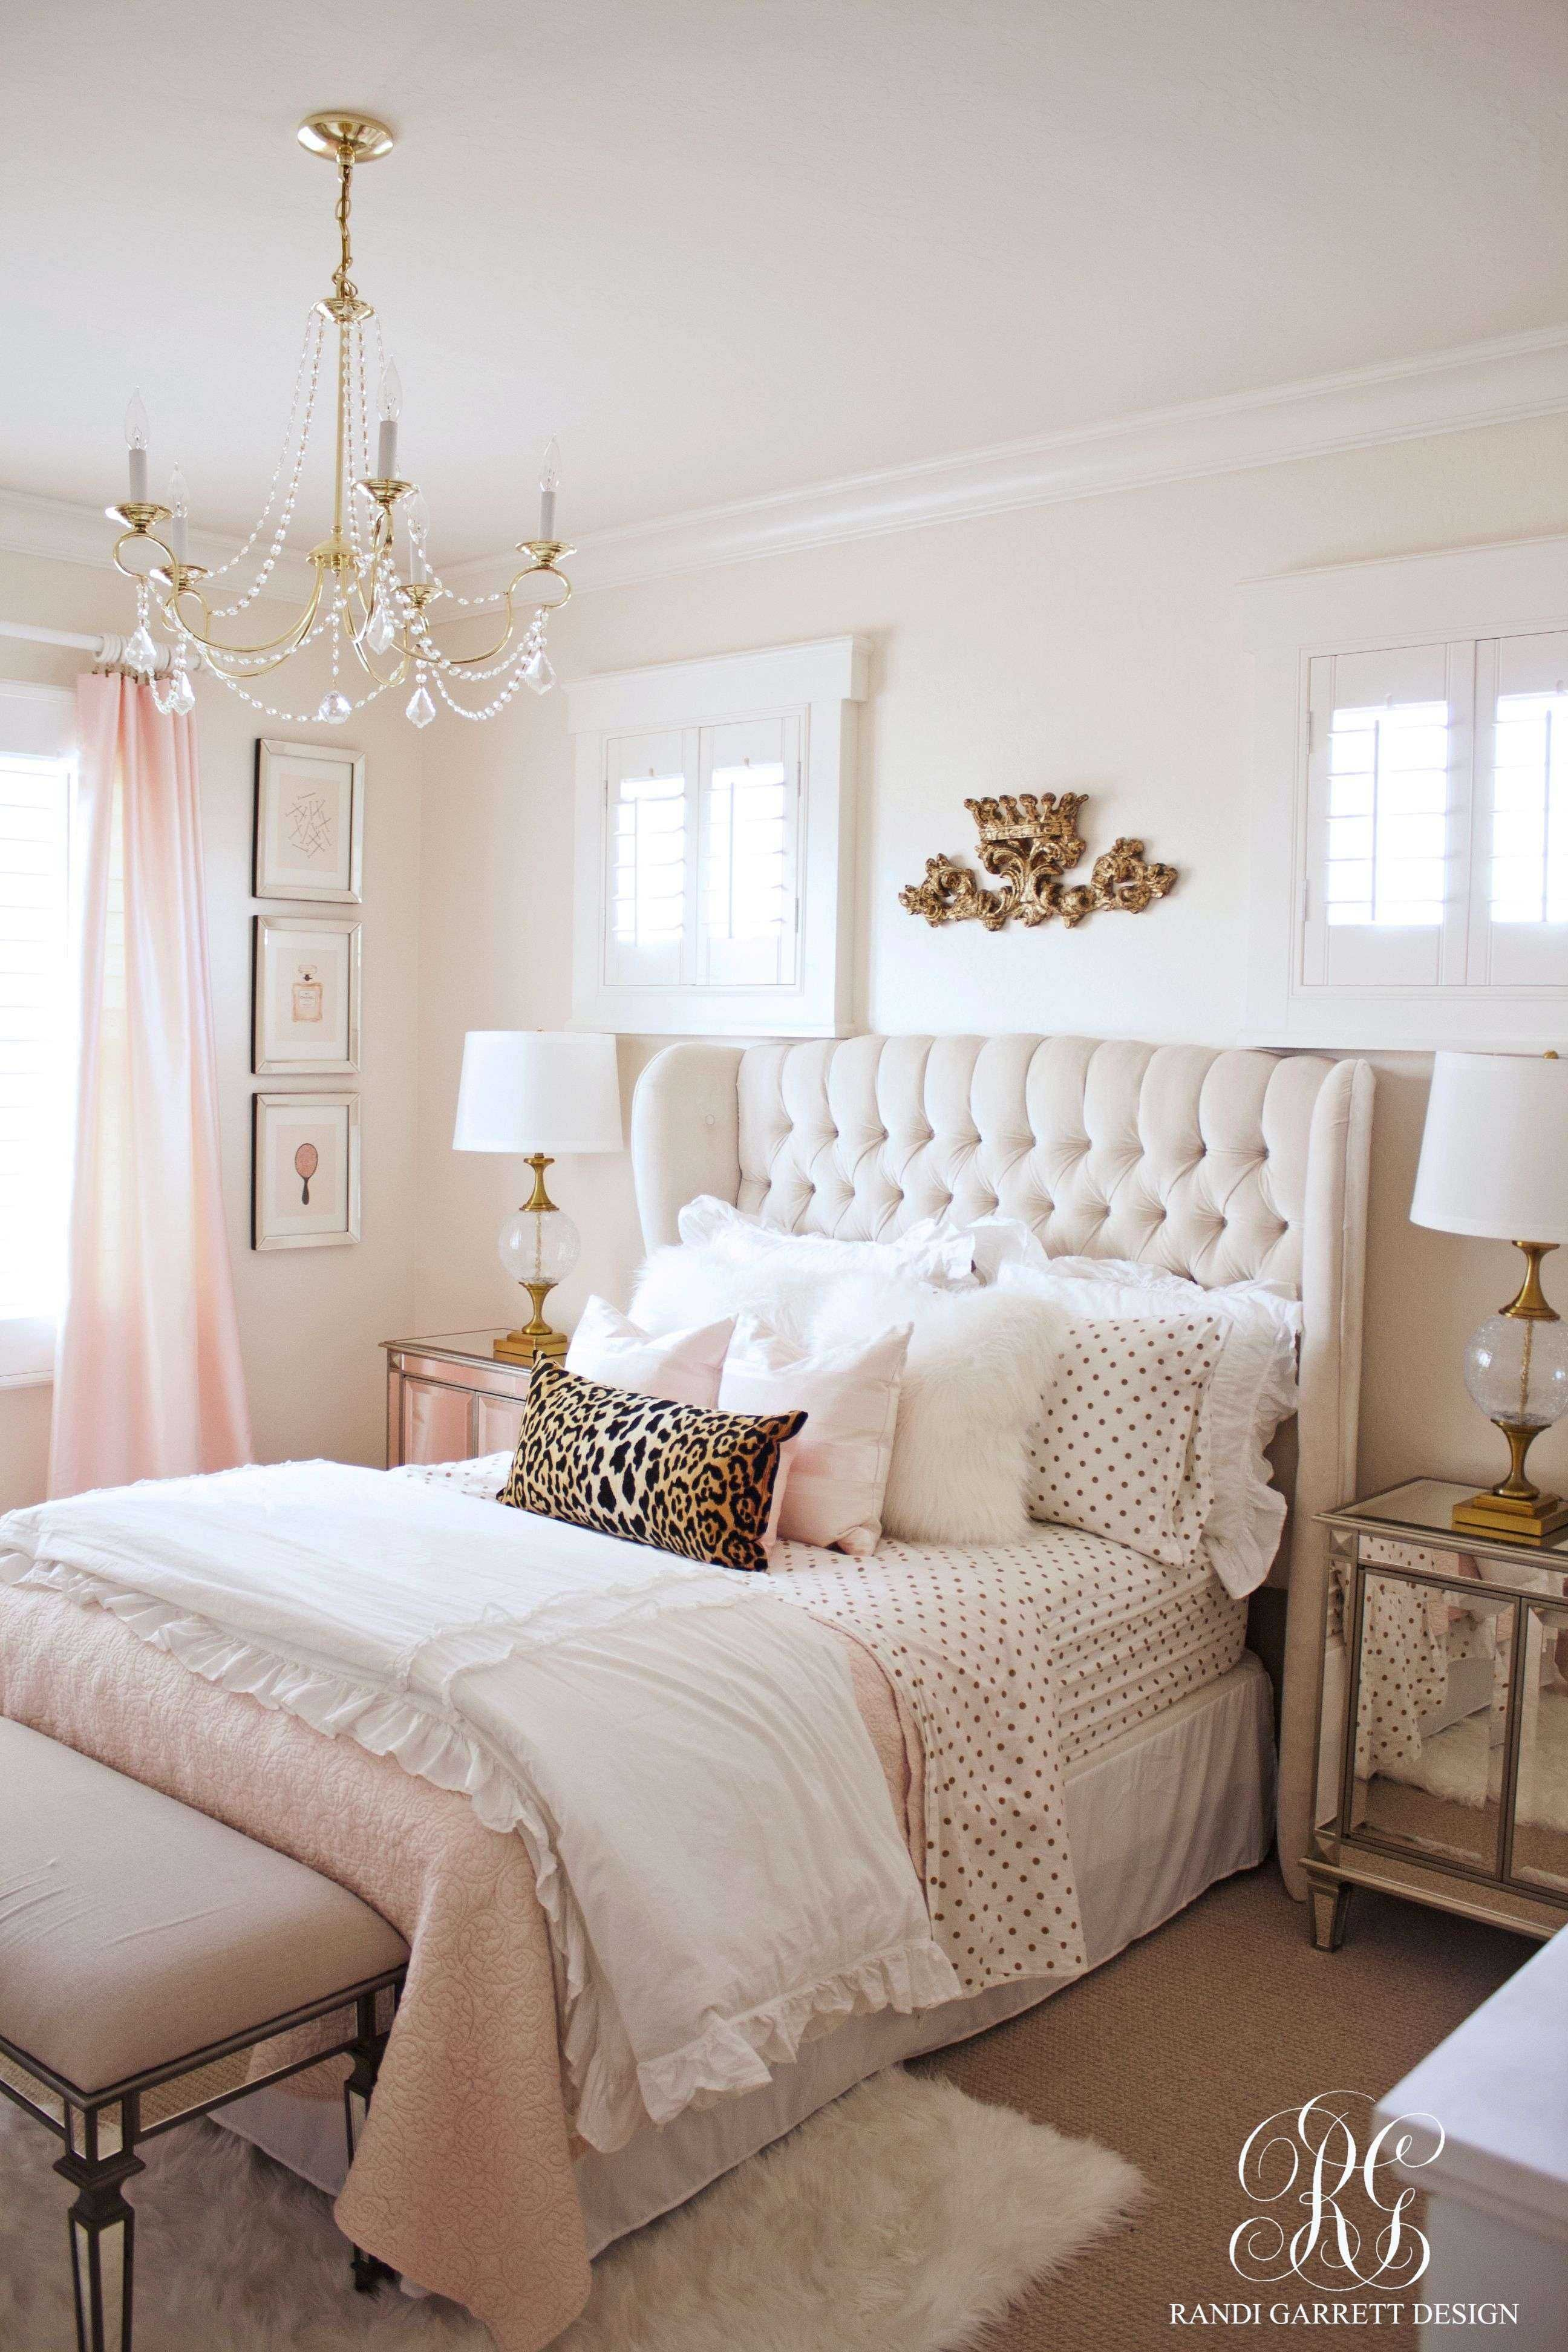 Shabby Chic Bedroom Decorating Ideas On A Budget Luxury Awesome Country Chic Rustic Glam Bedroom Bedroom Design Home Decor Bedroom Bedroom Makeover